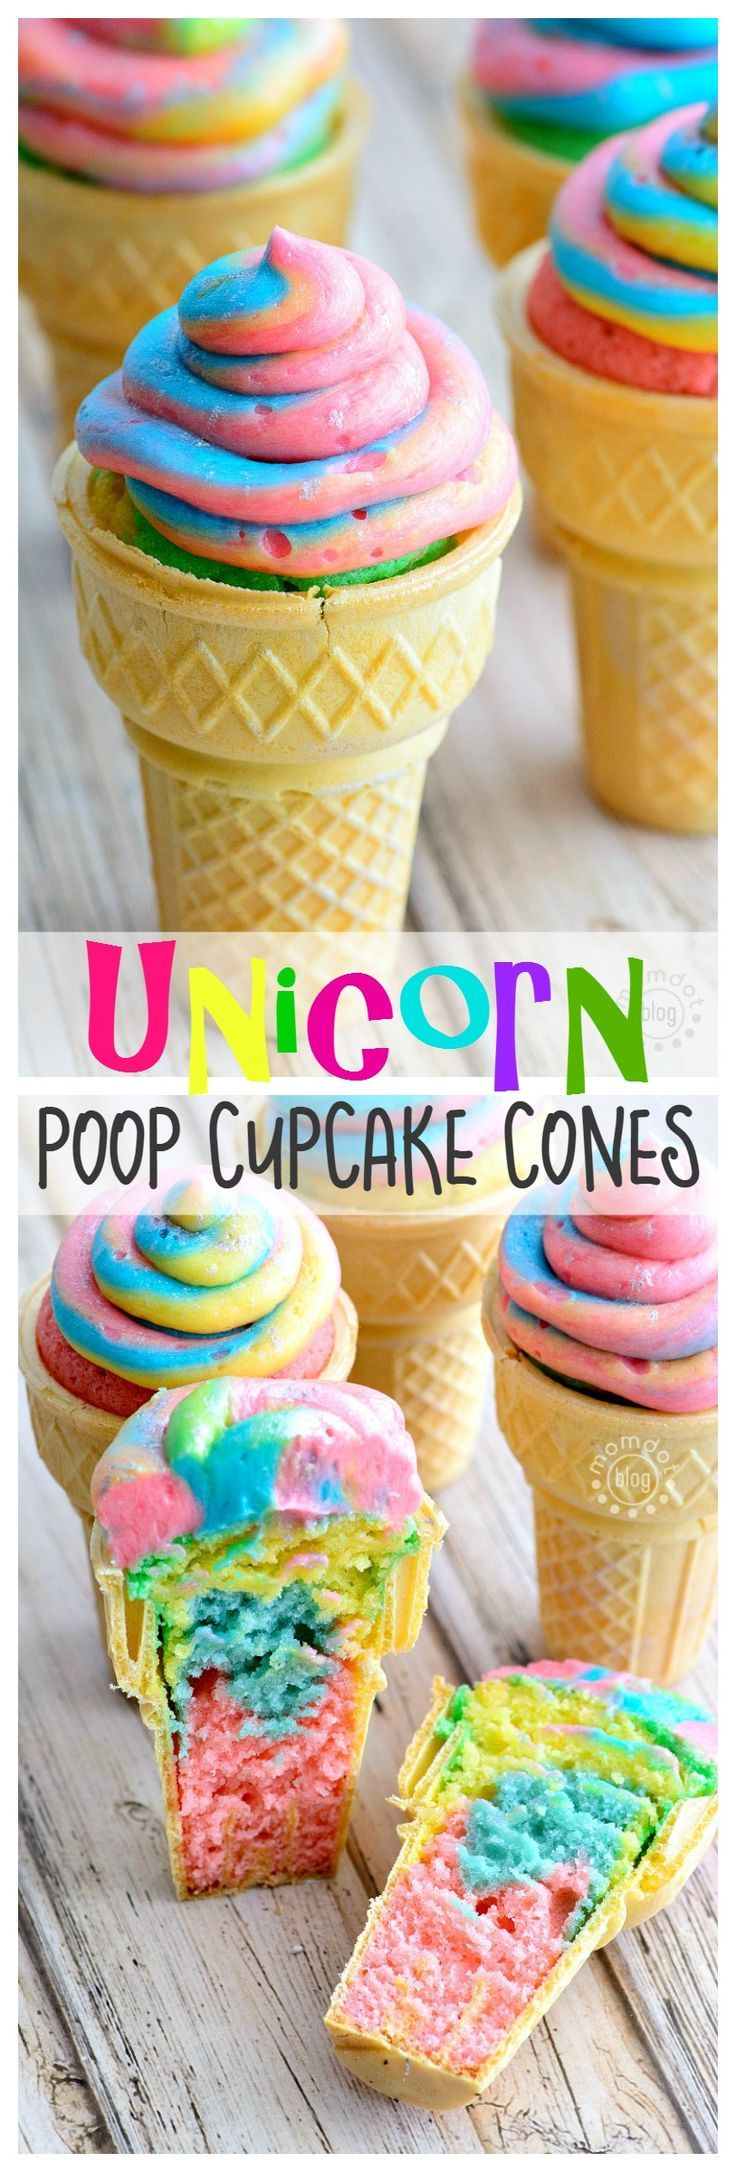 Unicorn Poop Cupcake Cones - learn how to make rainbow cupcake cones perfect for school parties. SO FUN. Get recipe and how to swirl frosting here now!(Summer Baking Treats)